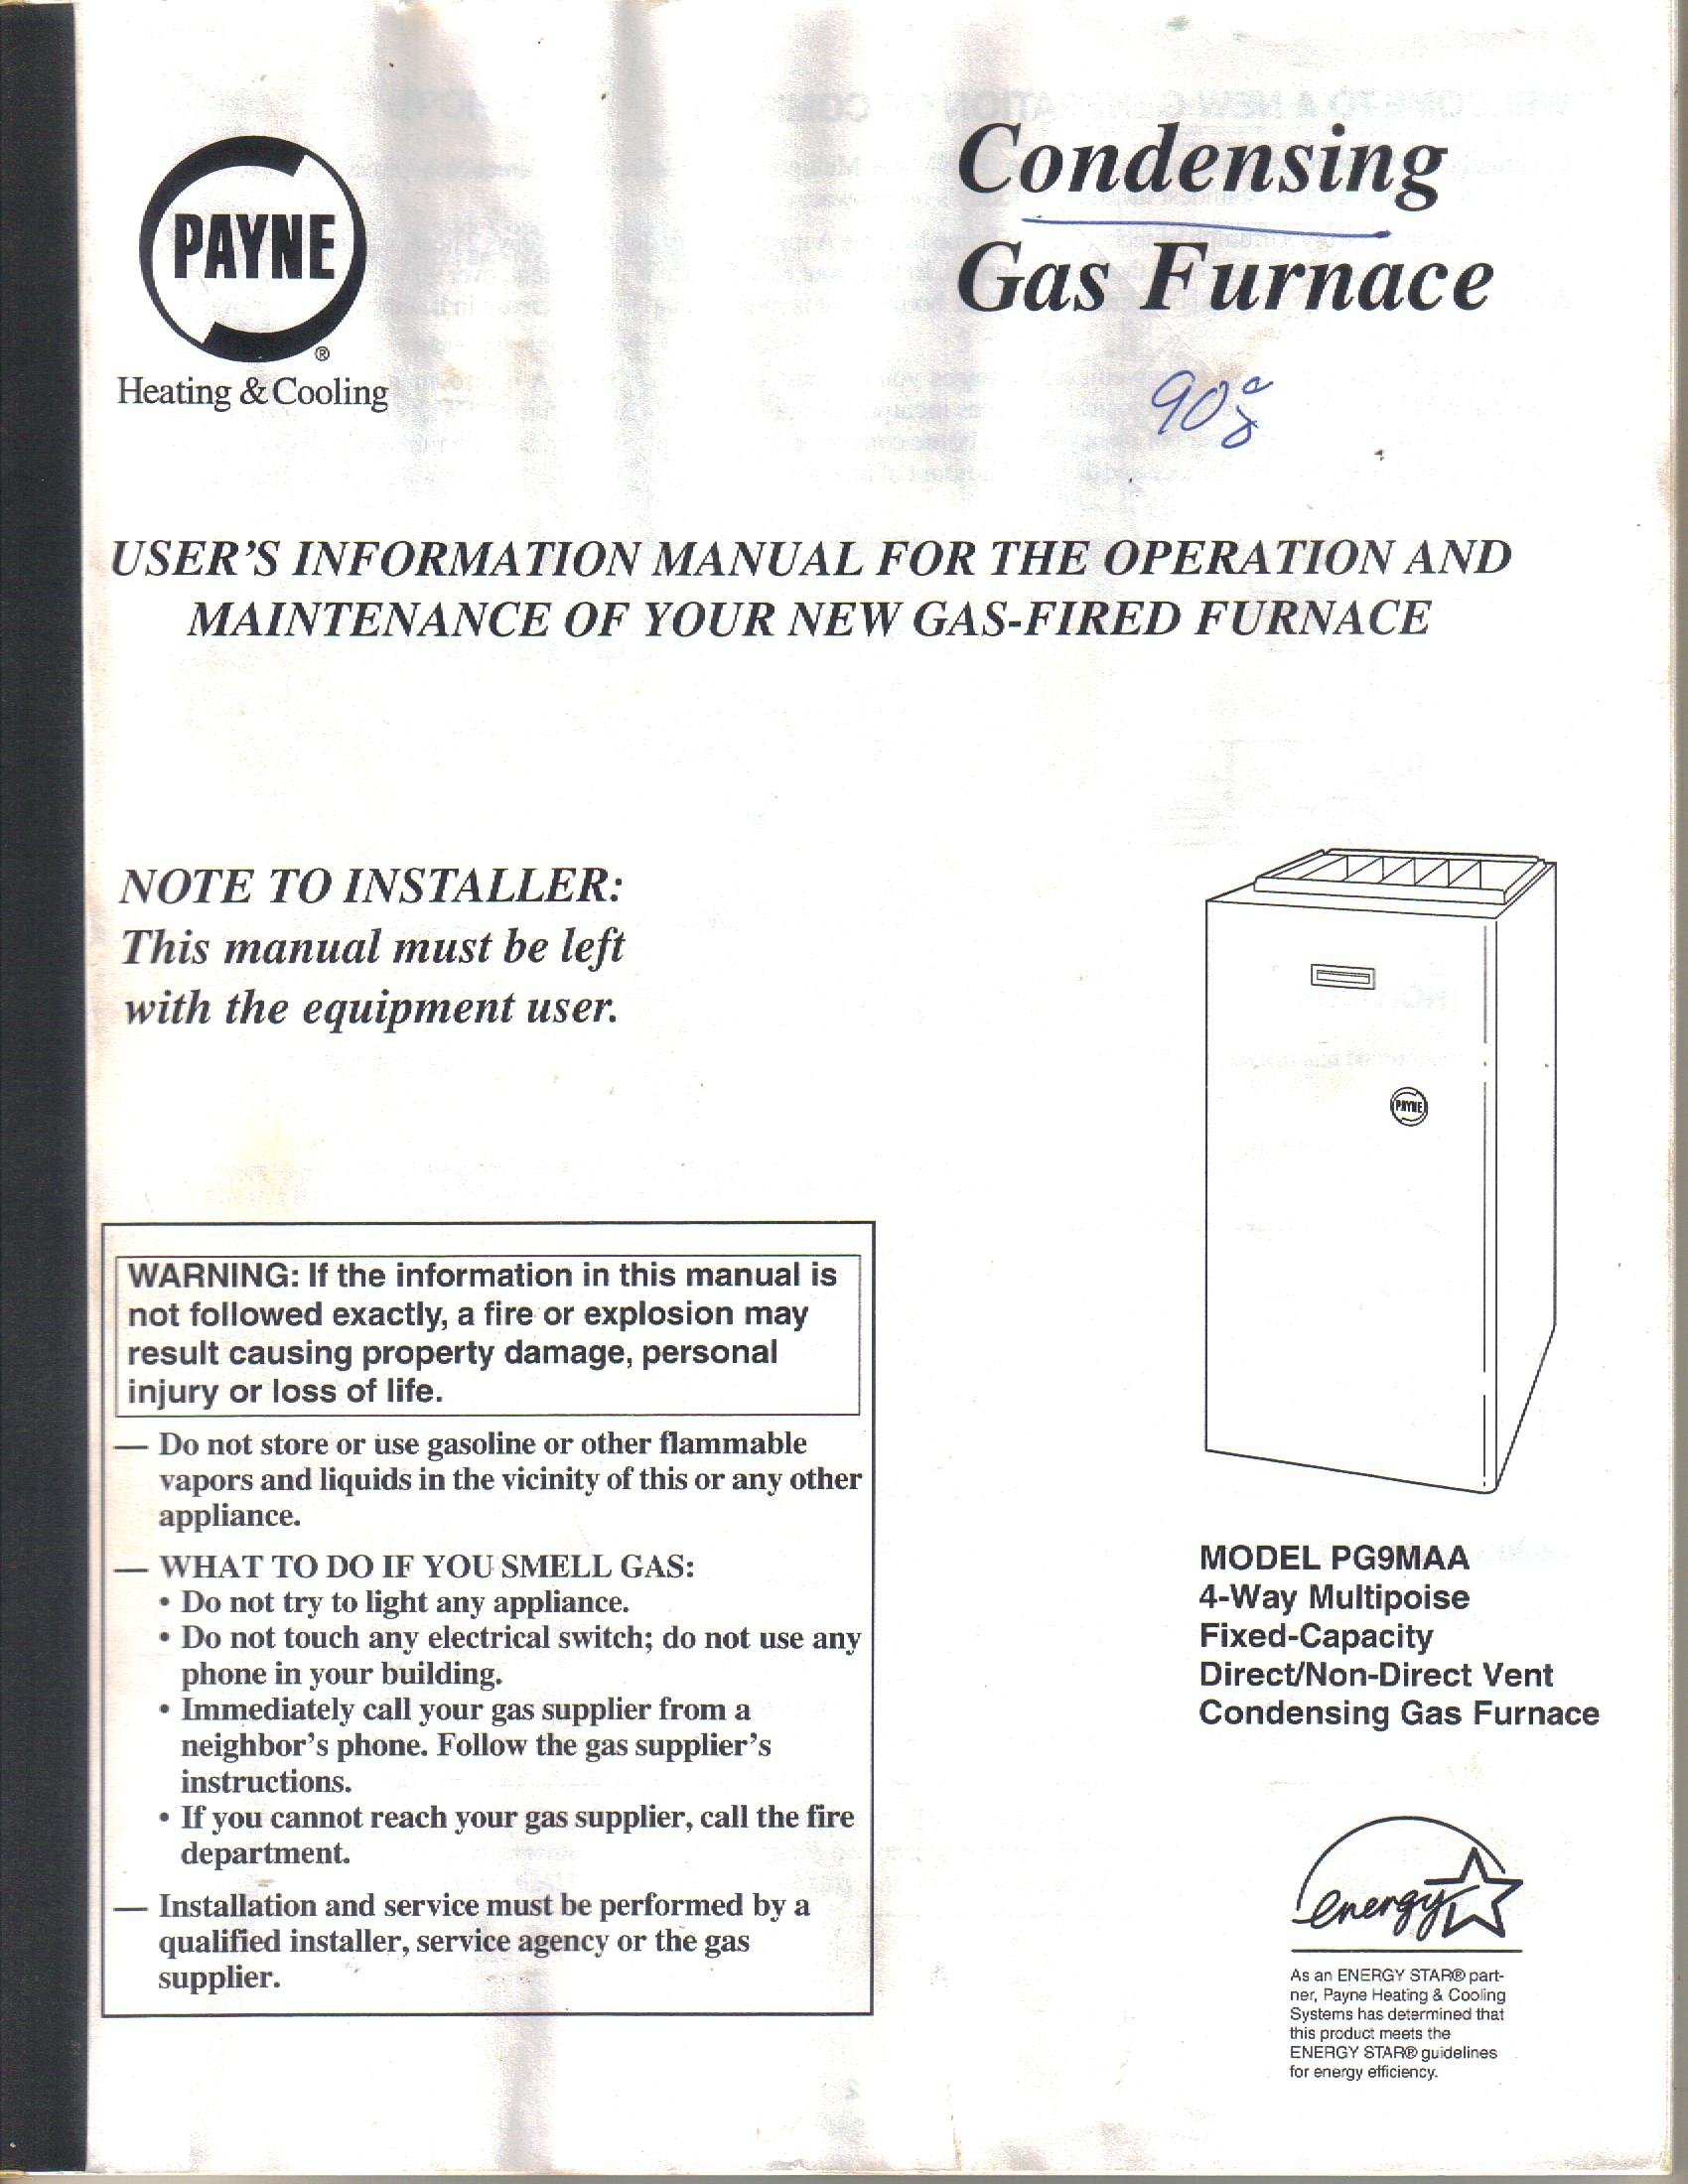 payne model pg9maa condensing gas furnace, user's installation service  operator's manual-owner's guide paperback – 1997